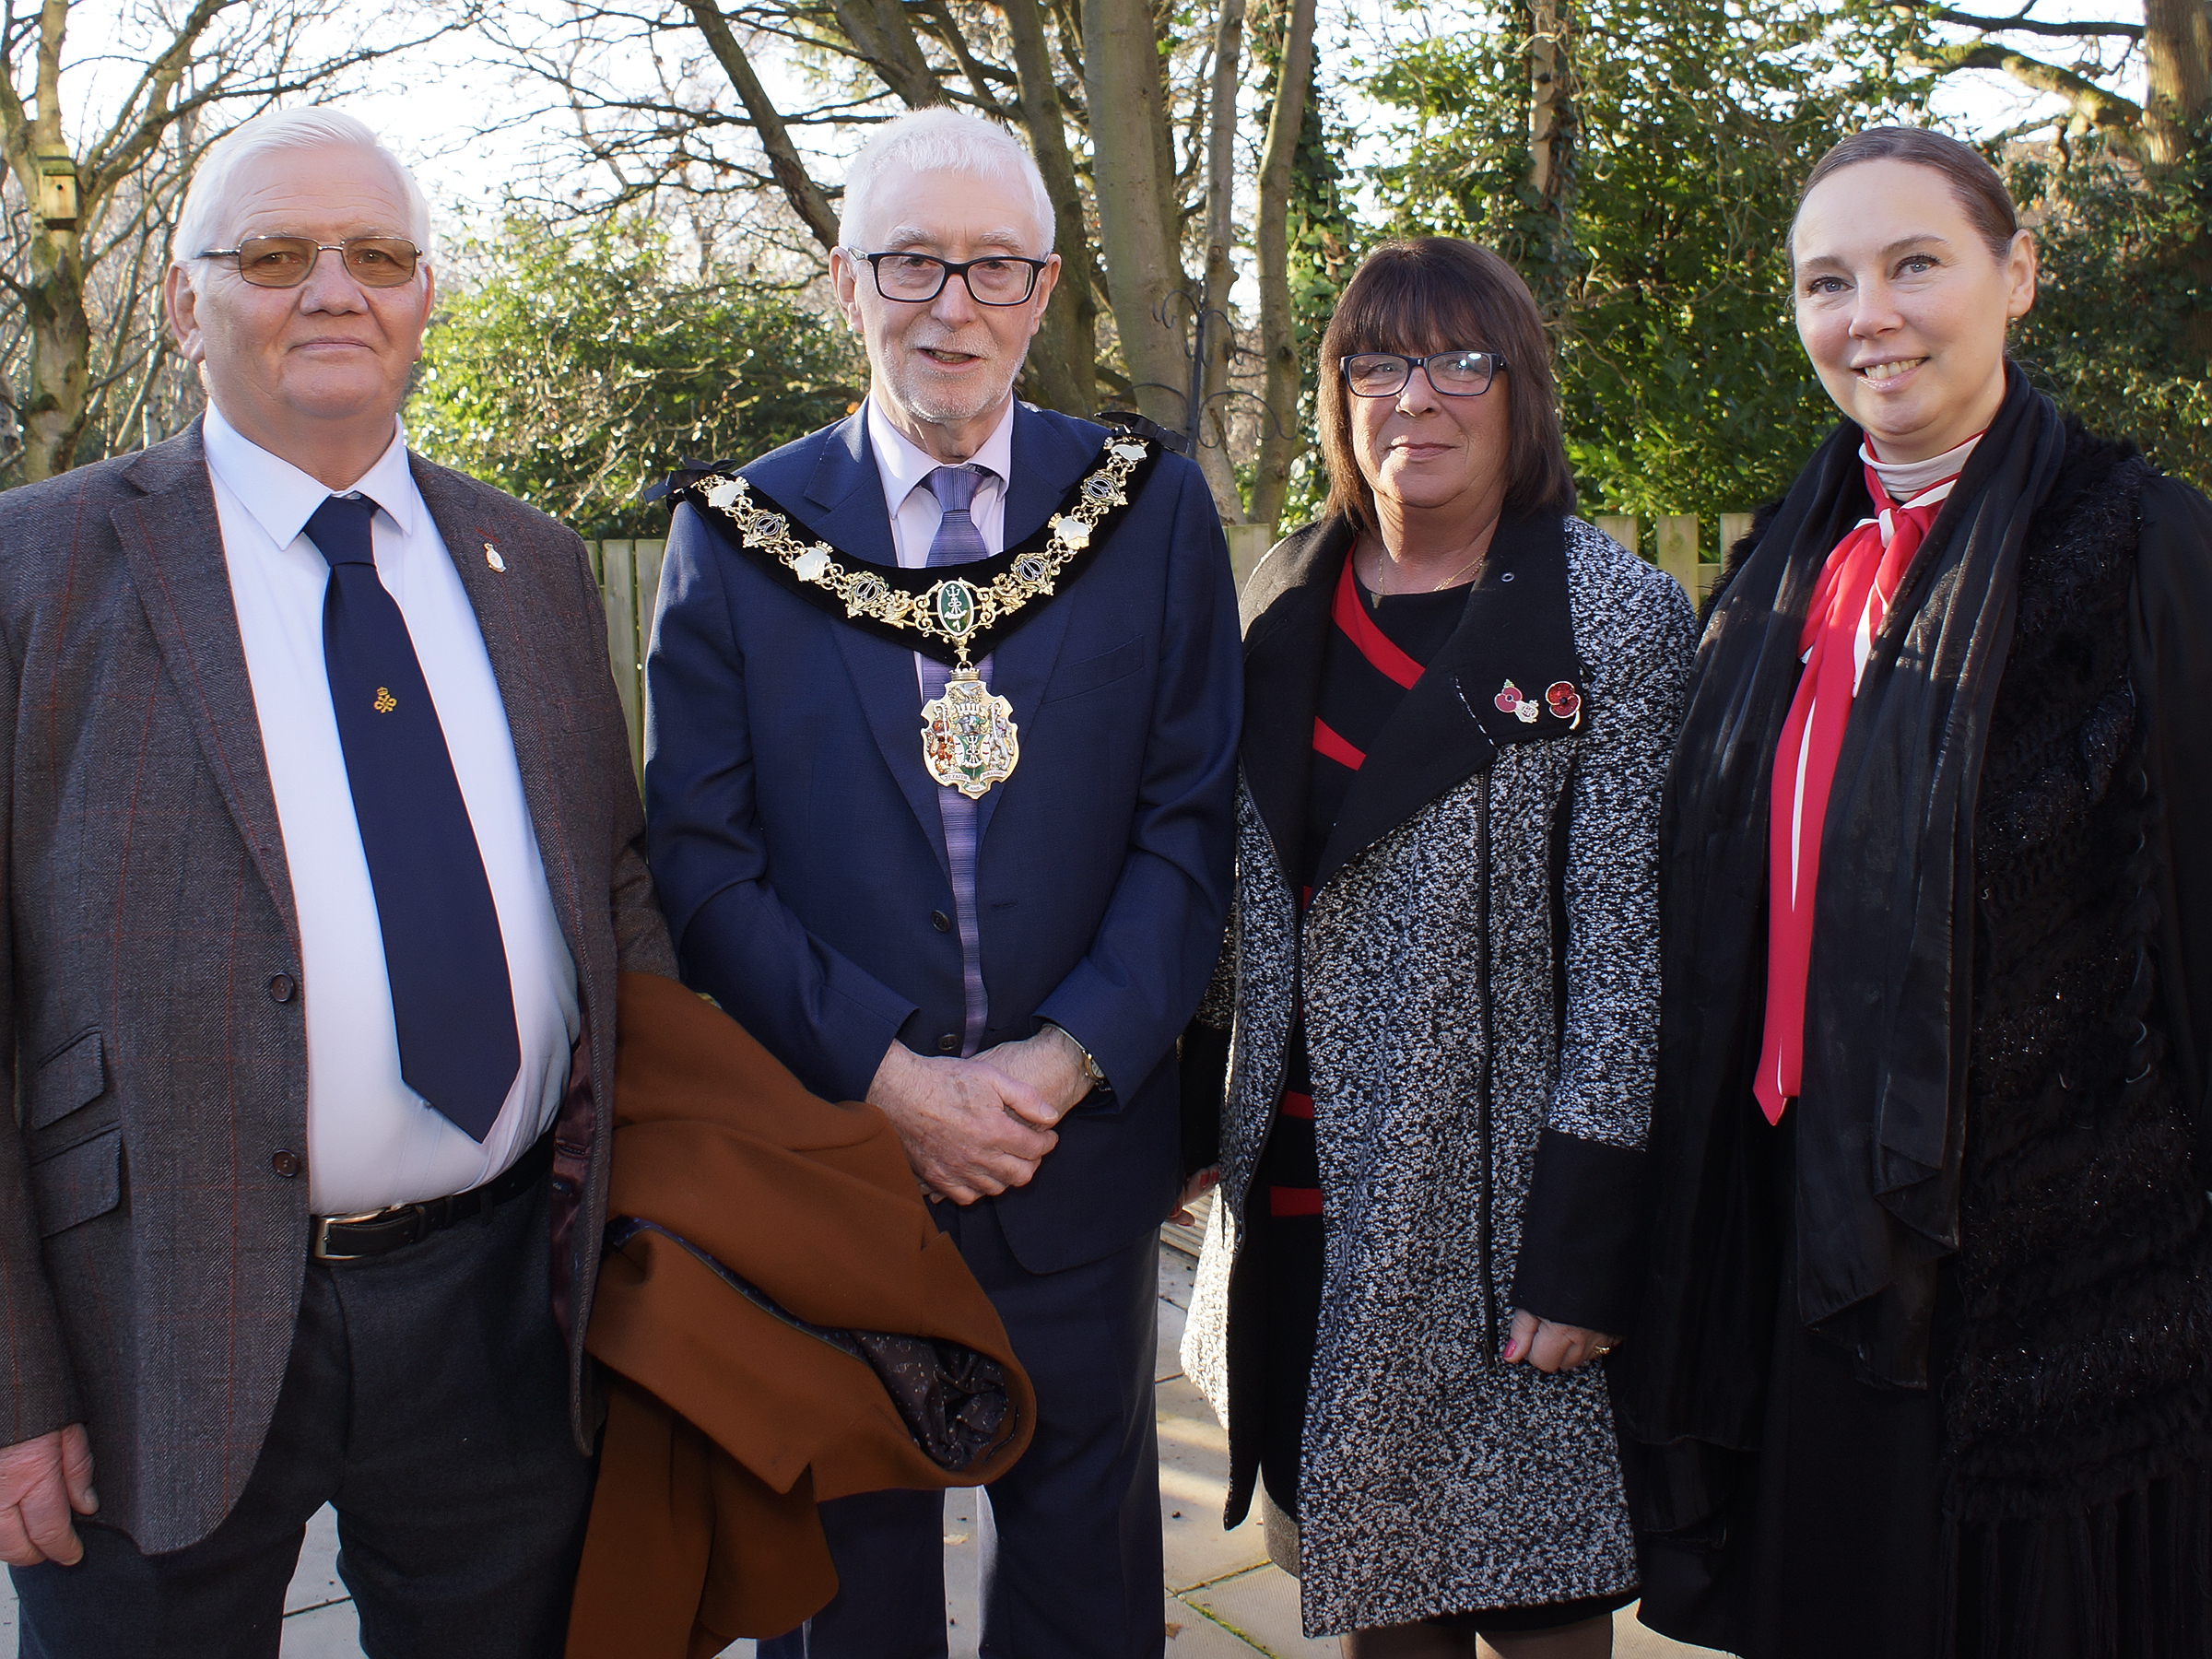 Festive lunch held for veterans and their families